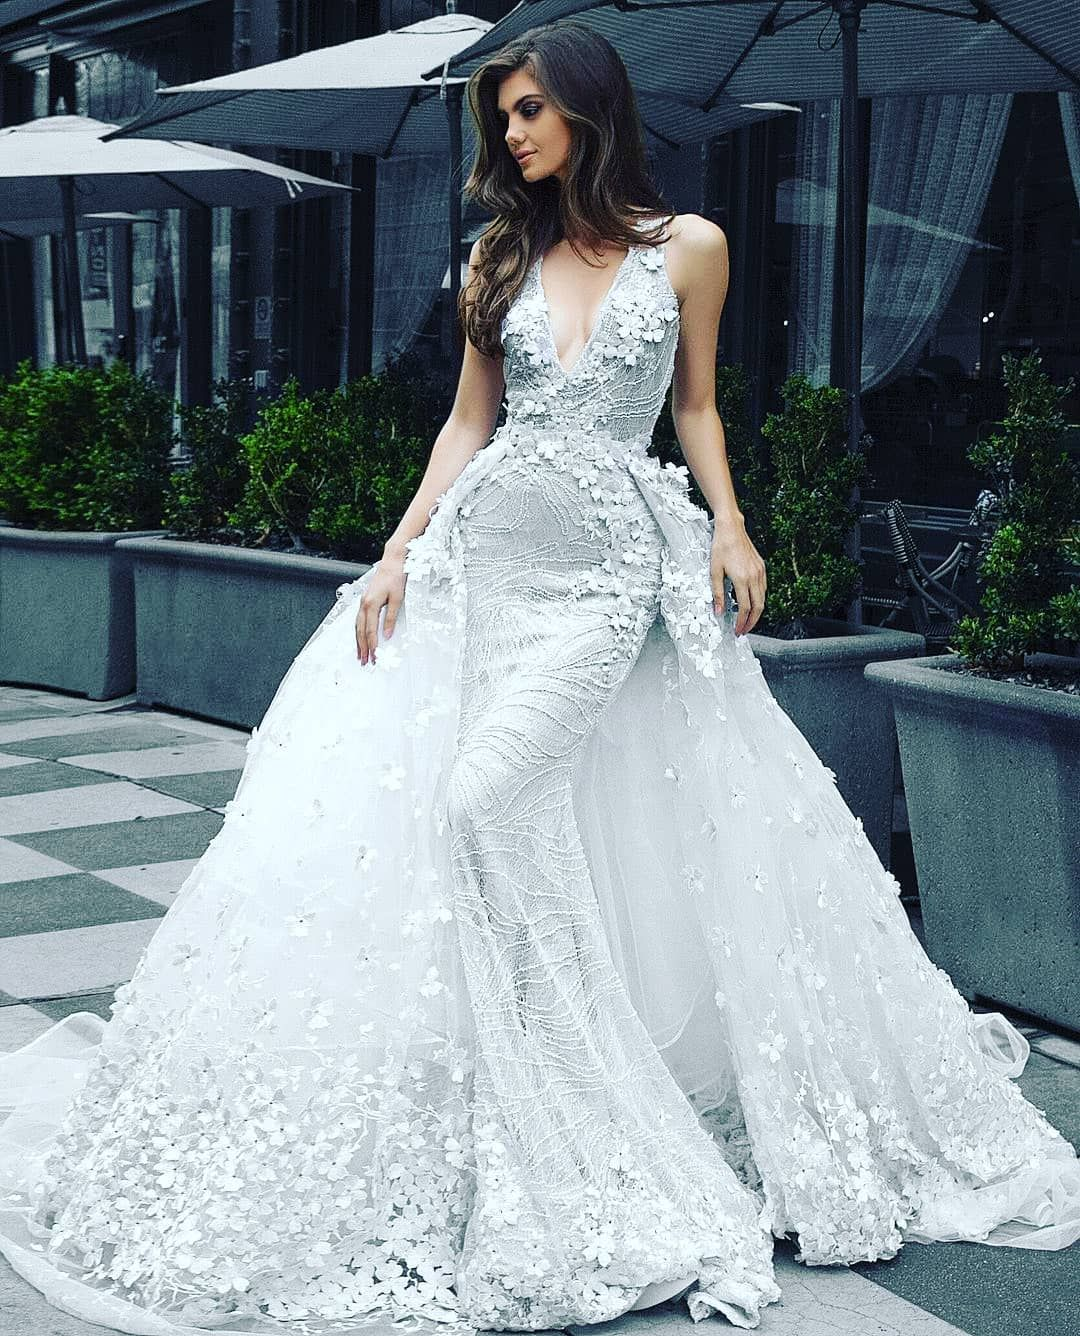 Pin By Estela Alatorre On Wedding Dresses In 2020 Glamourous Wedding Dress Wedding Dresses Wedding Dress Accessories